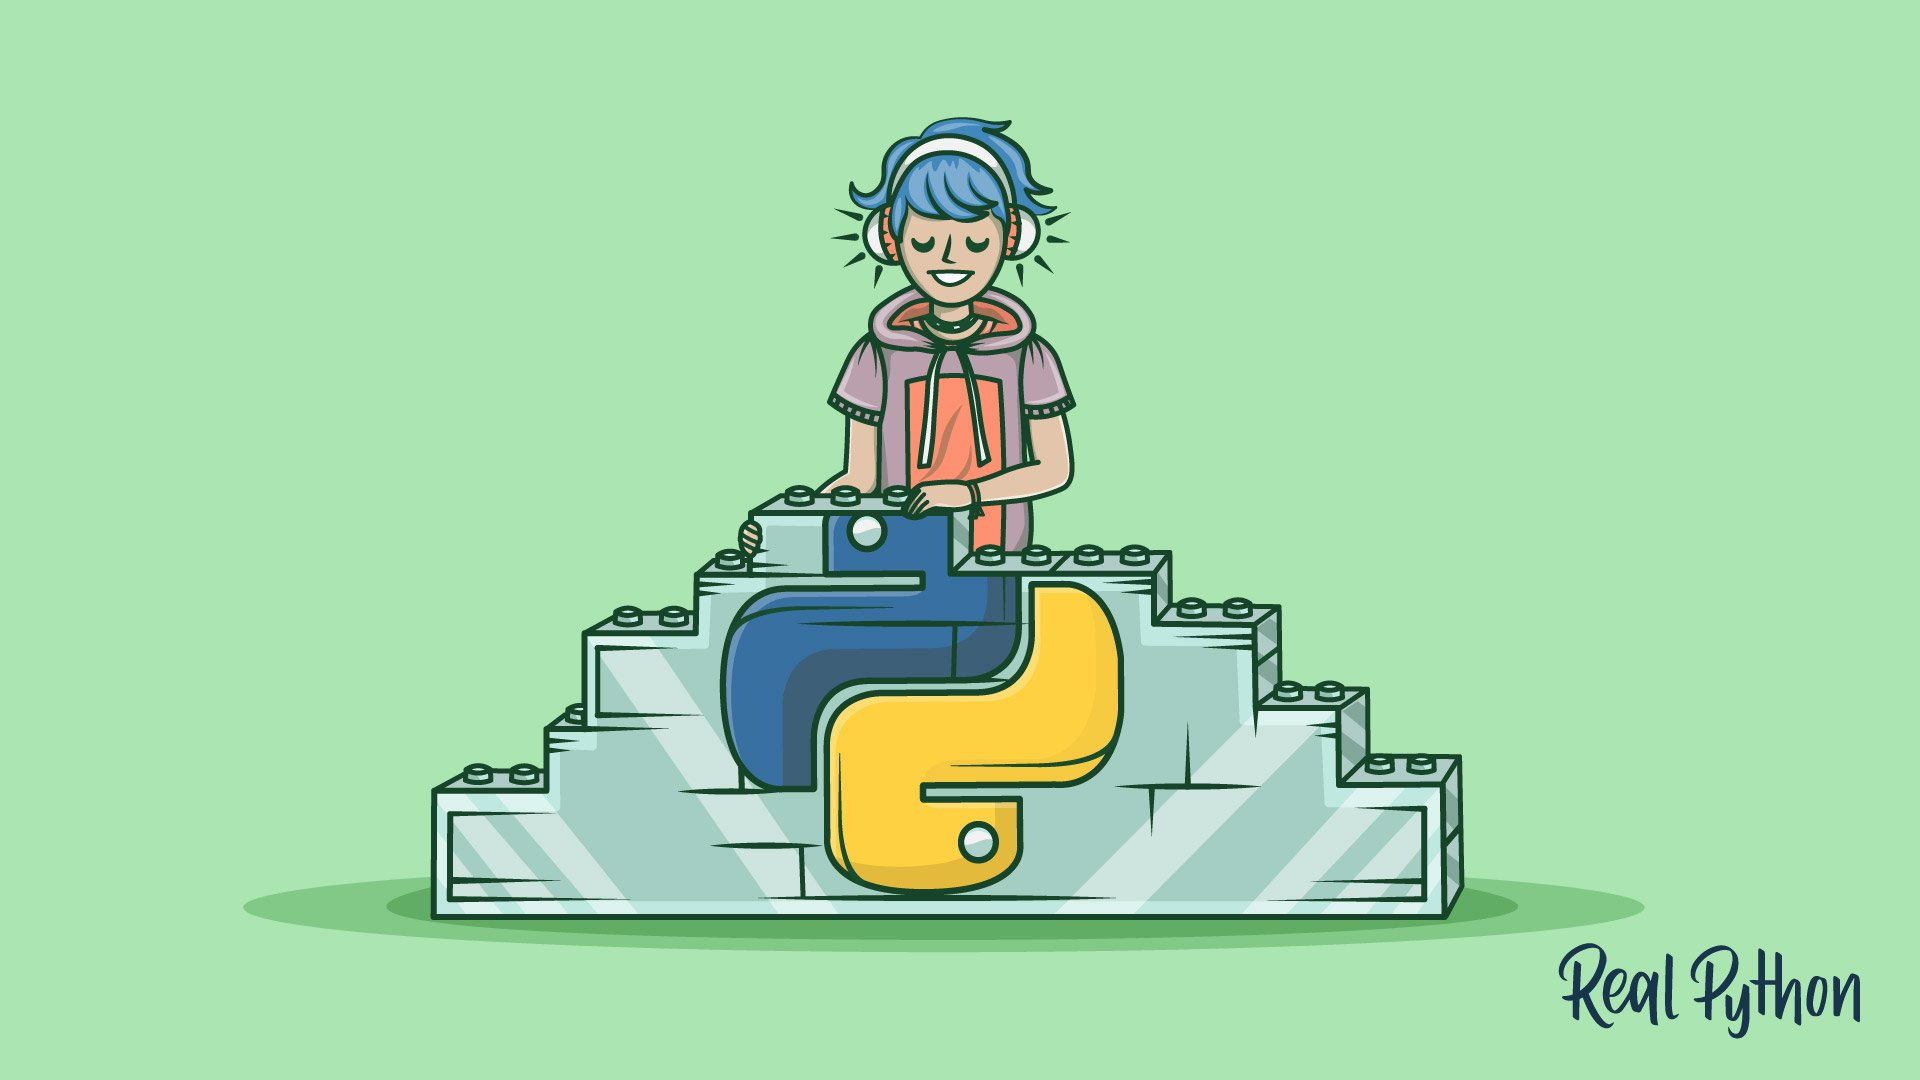 What Can I Do With Python? – Real Python